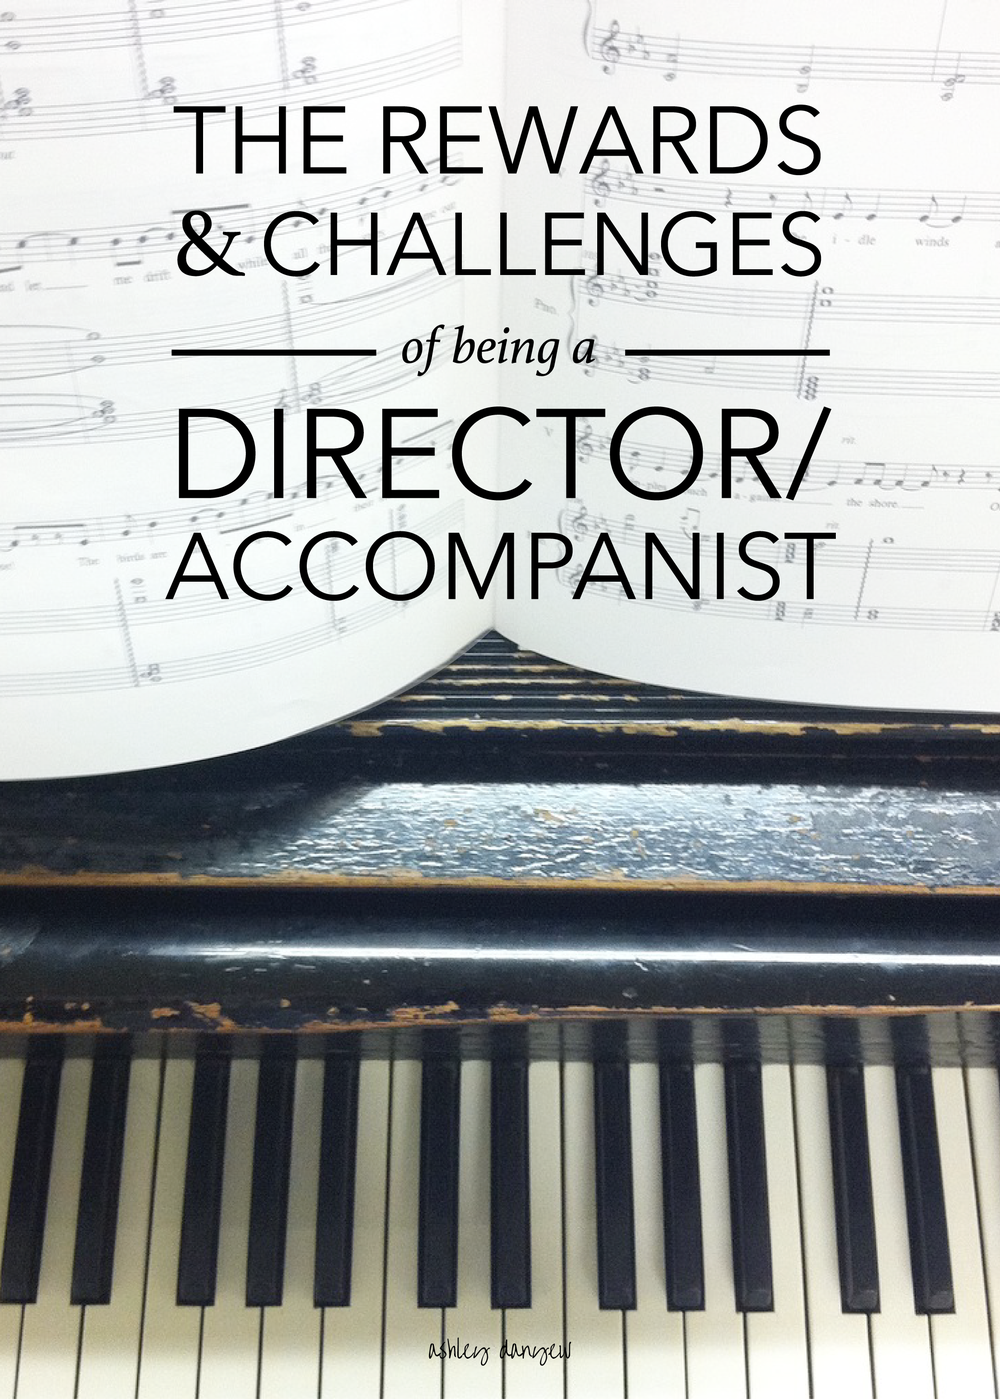 Copy of The Rewards and Challenges of Being a Director/Accompanist